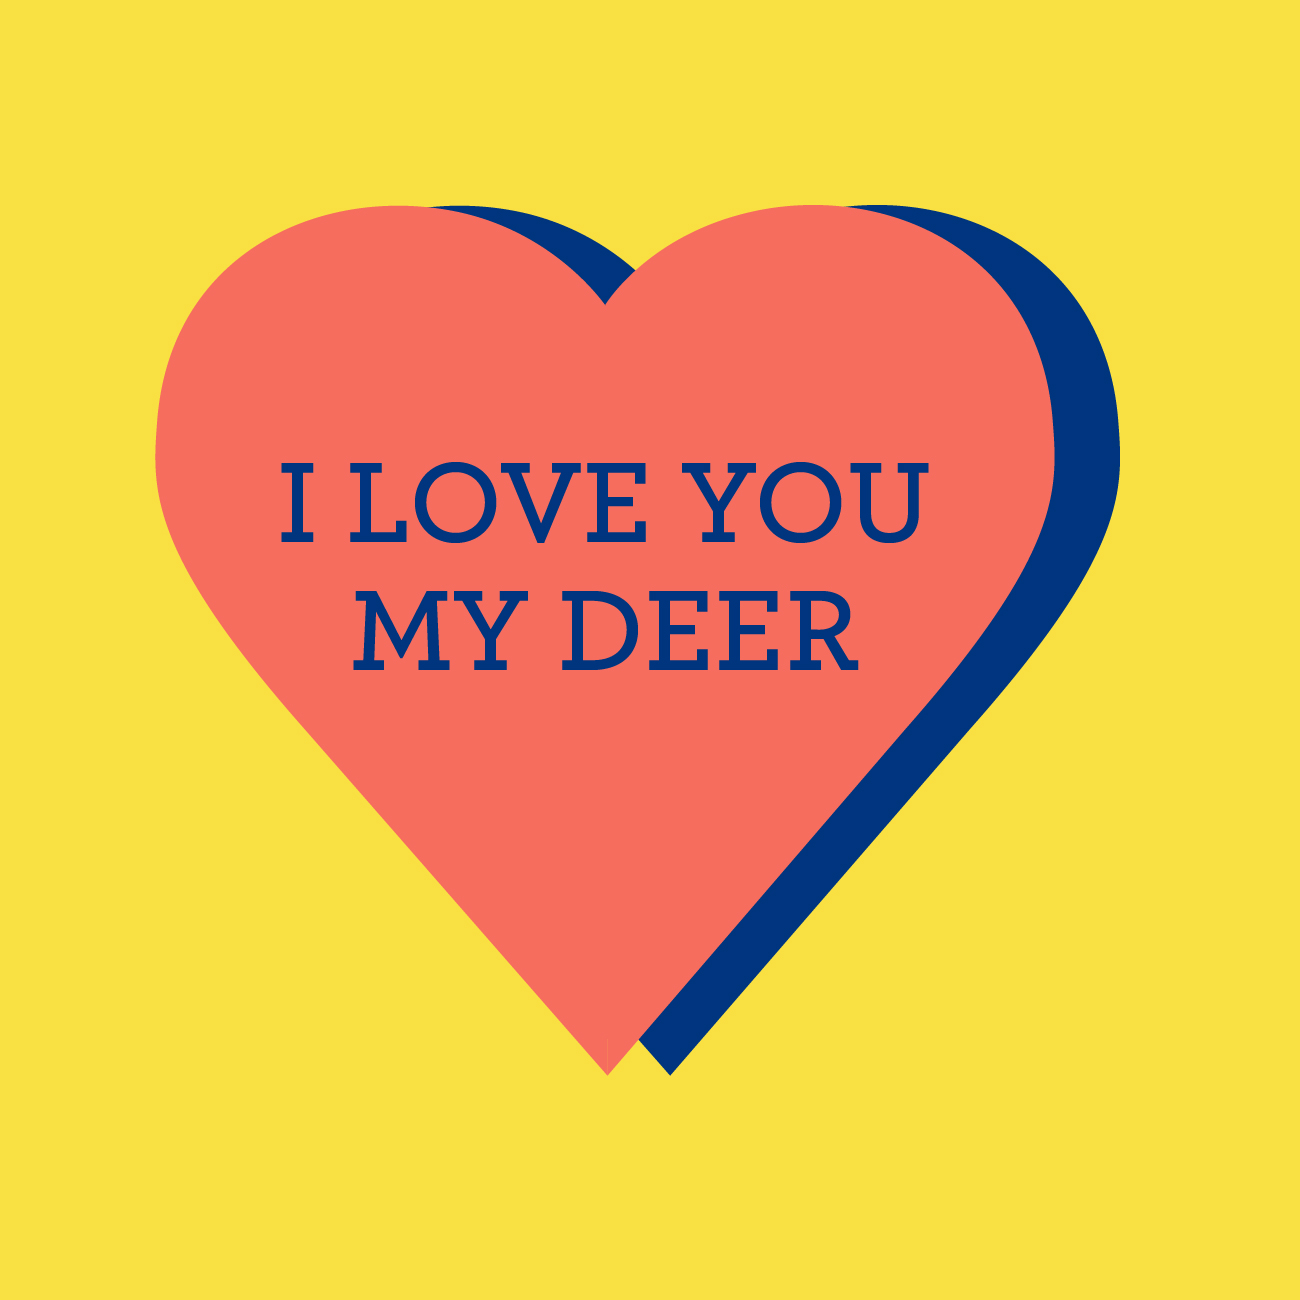 0_I love you my deer-22.jpg